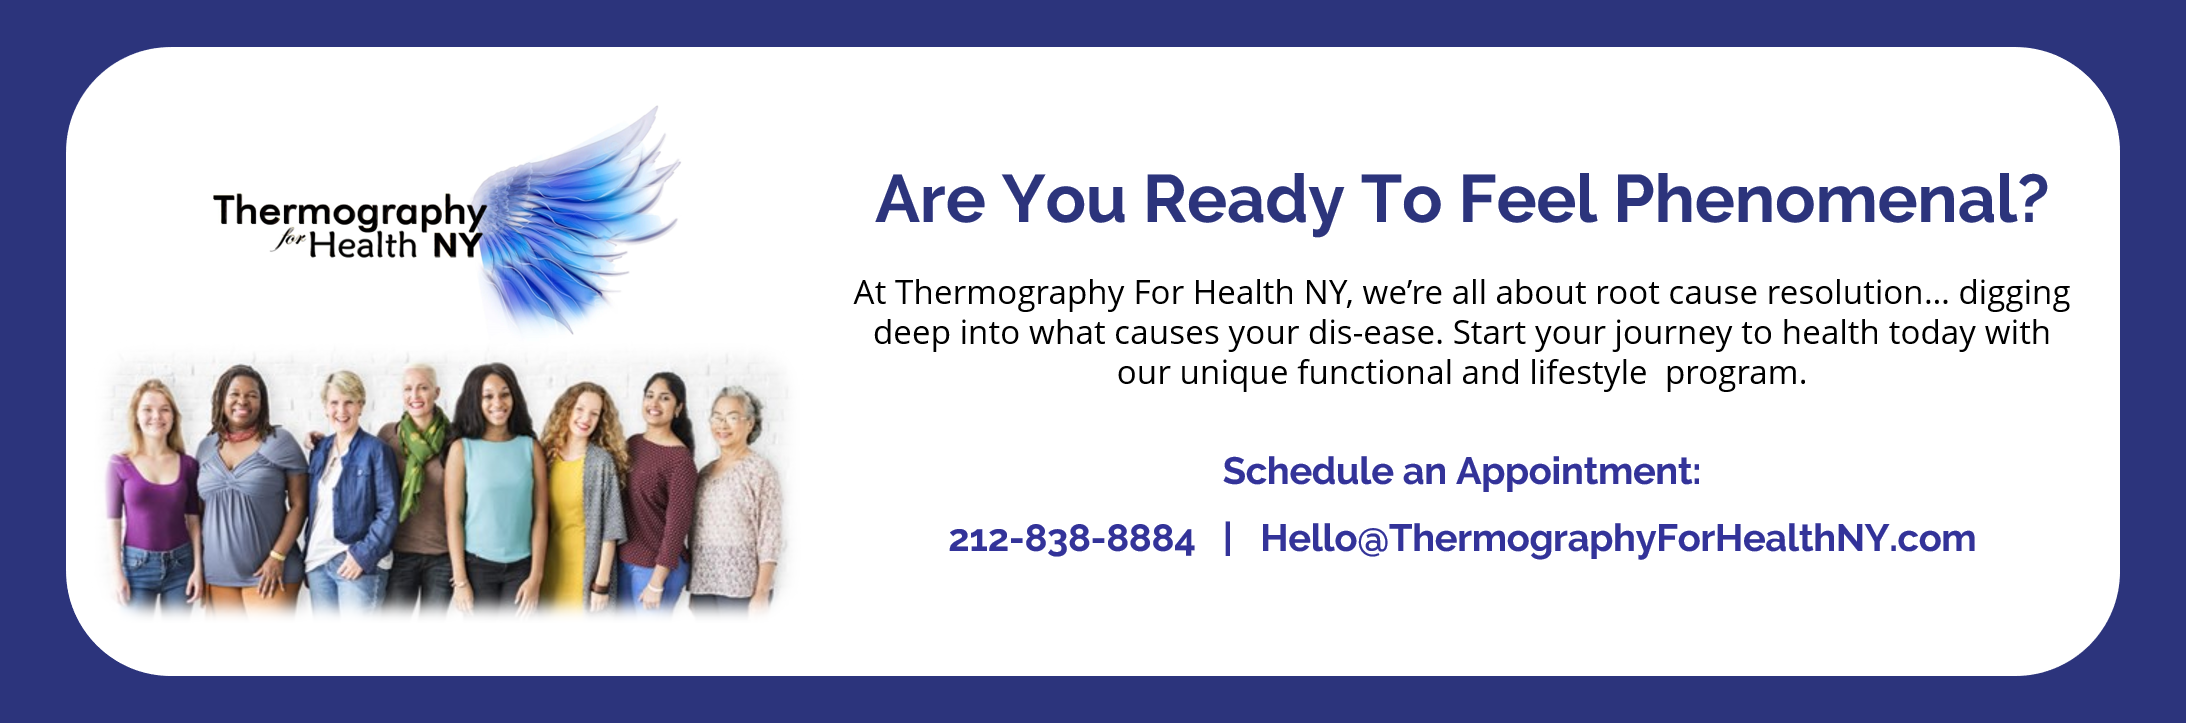 Thermography For Health New York reviews | 120 E 56th St. - New York NY